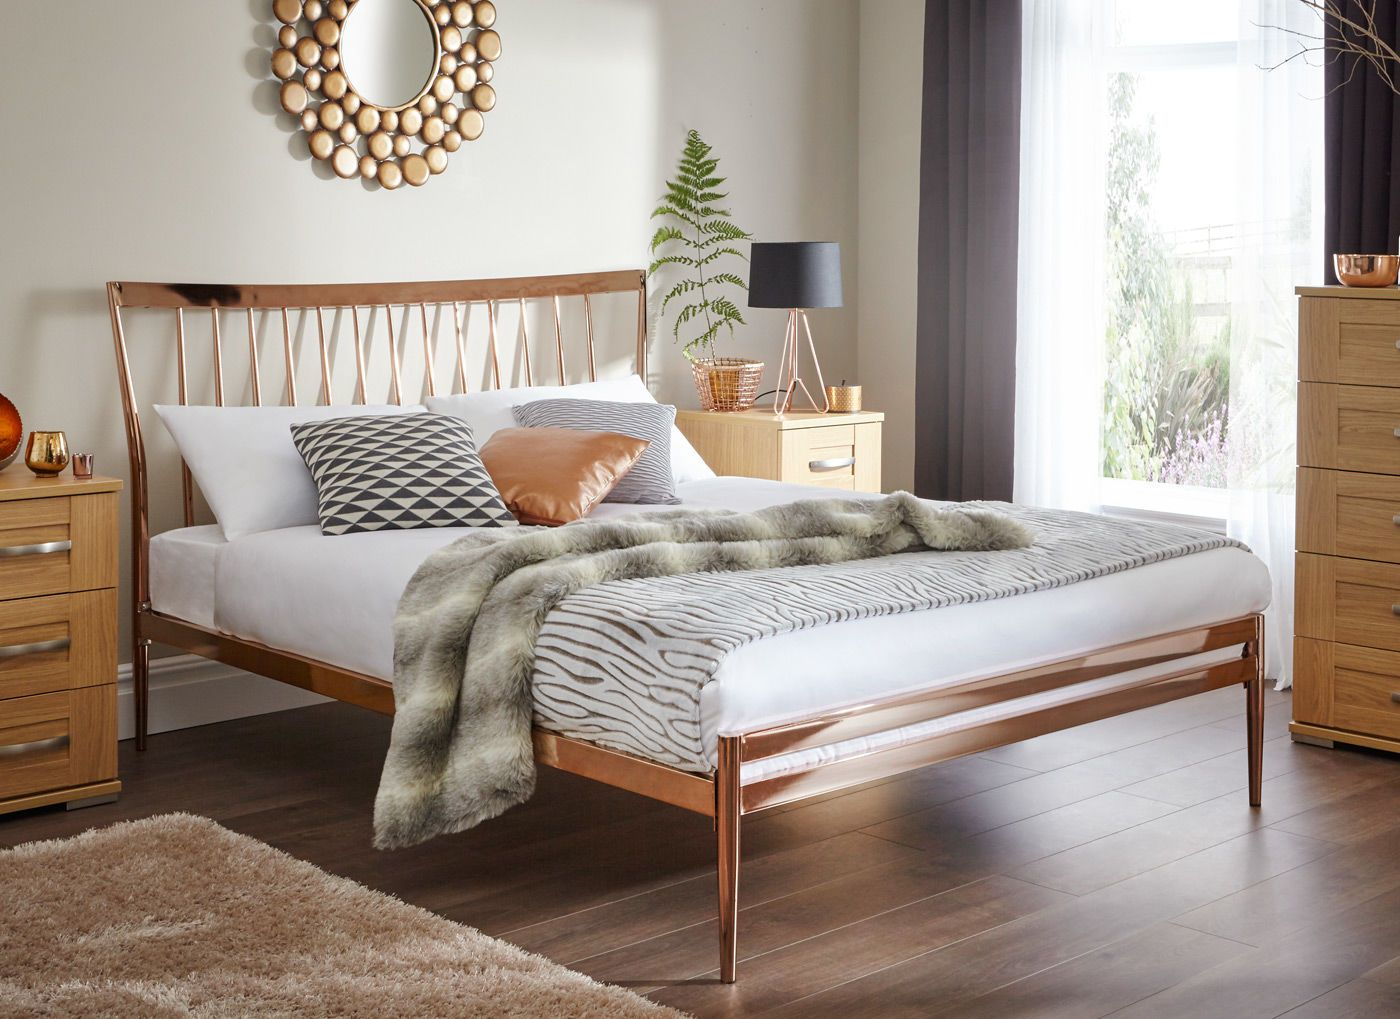 Introducing our first ever copper plated bed, the Blake is